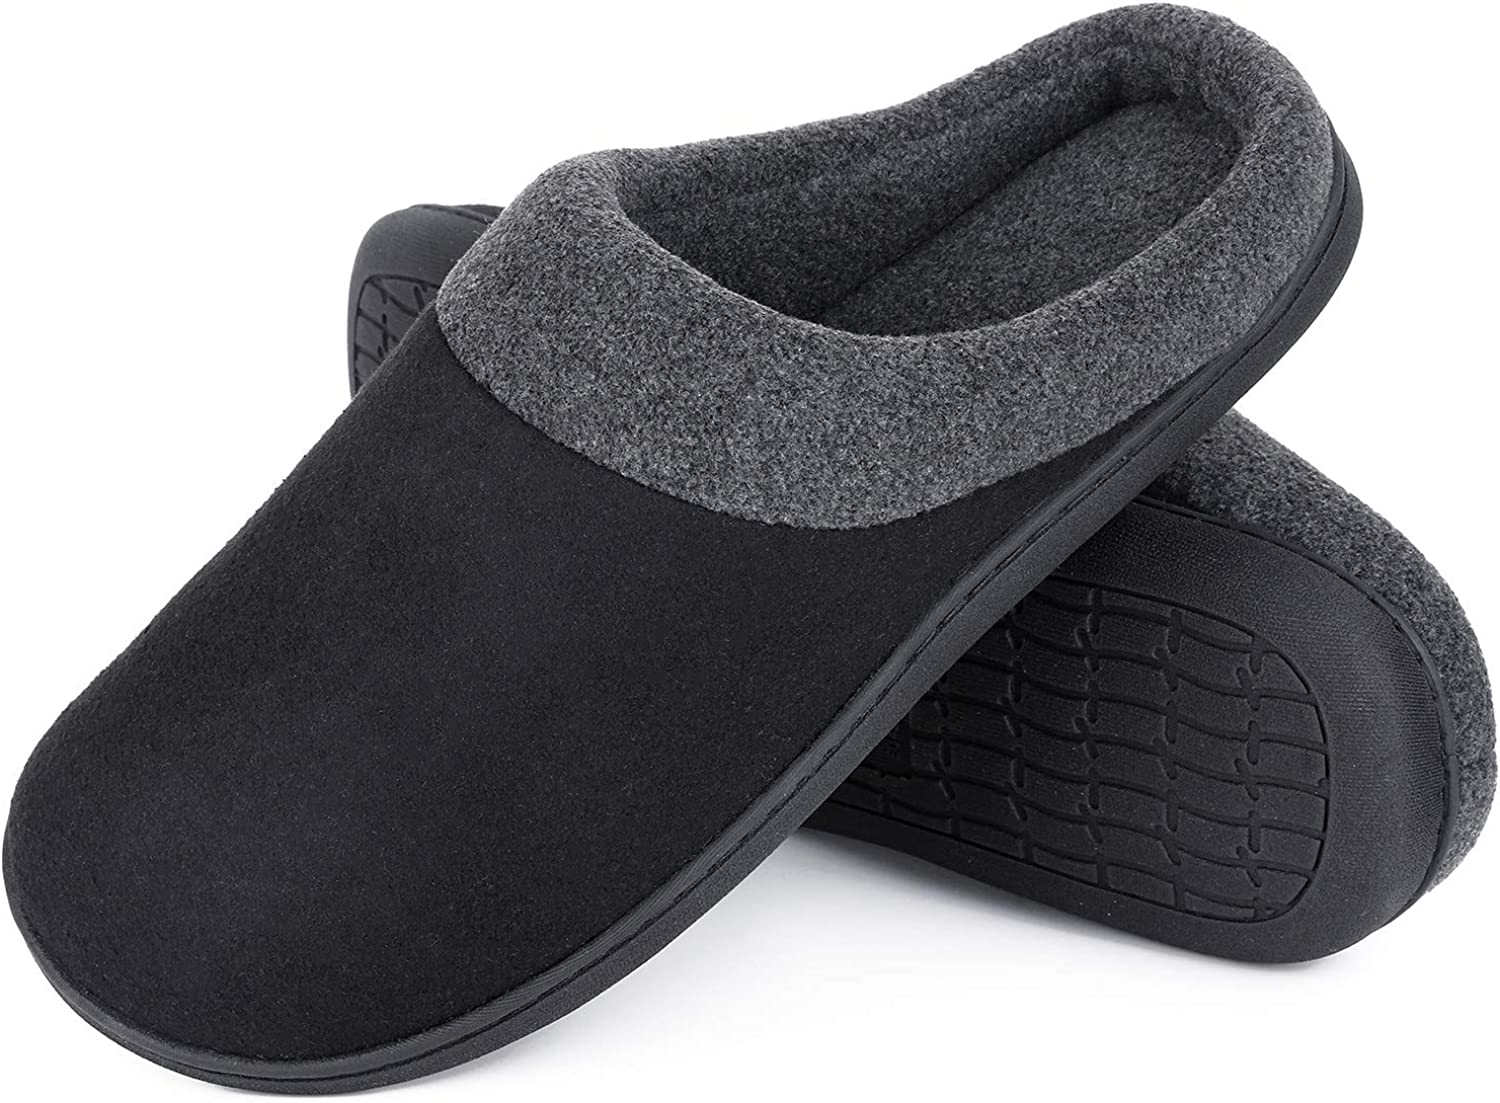 Spring Summer Breathable Indoor Shoes HomeIdeas Mens Woolen Fabric Memory Foam Anti-Slip House Slippers